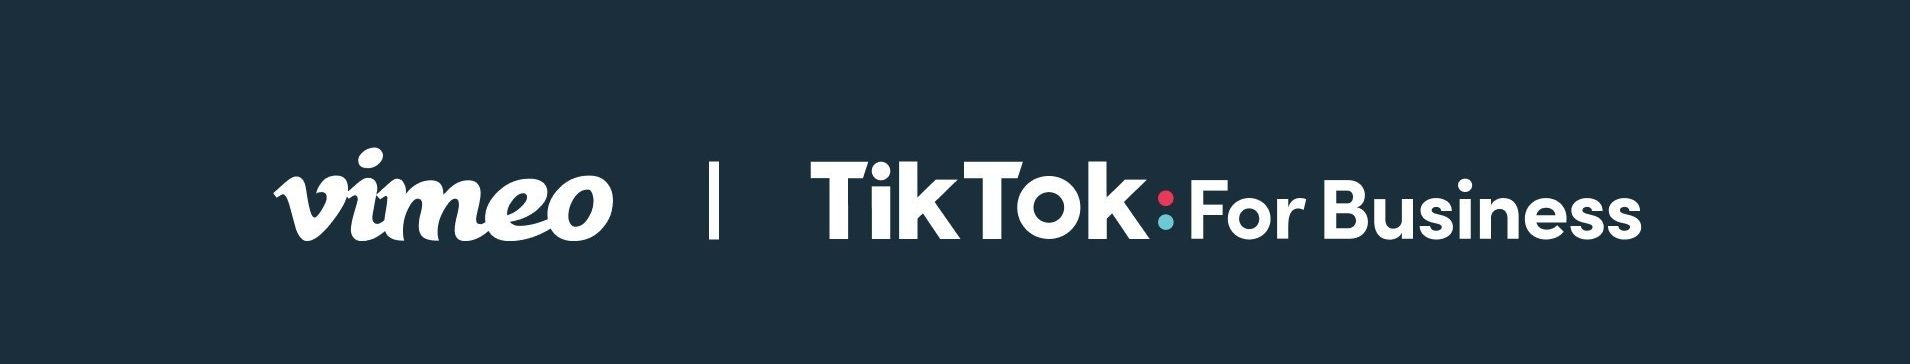 Partnership update from Tiktok; pairing up with Vimeo; another social platform